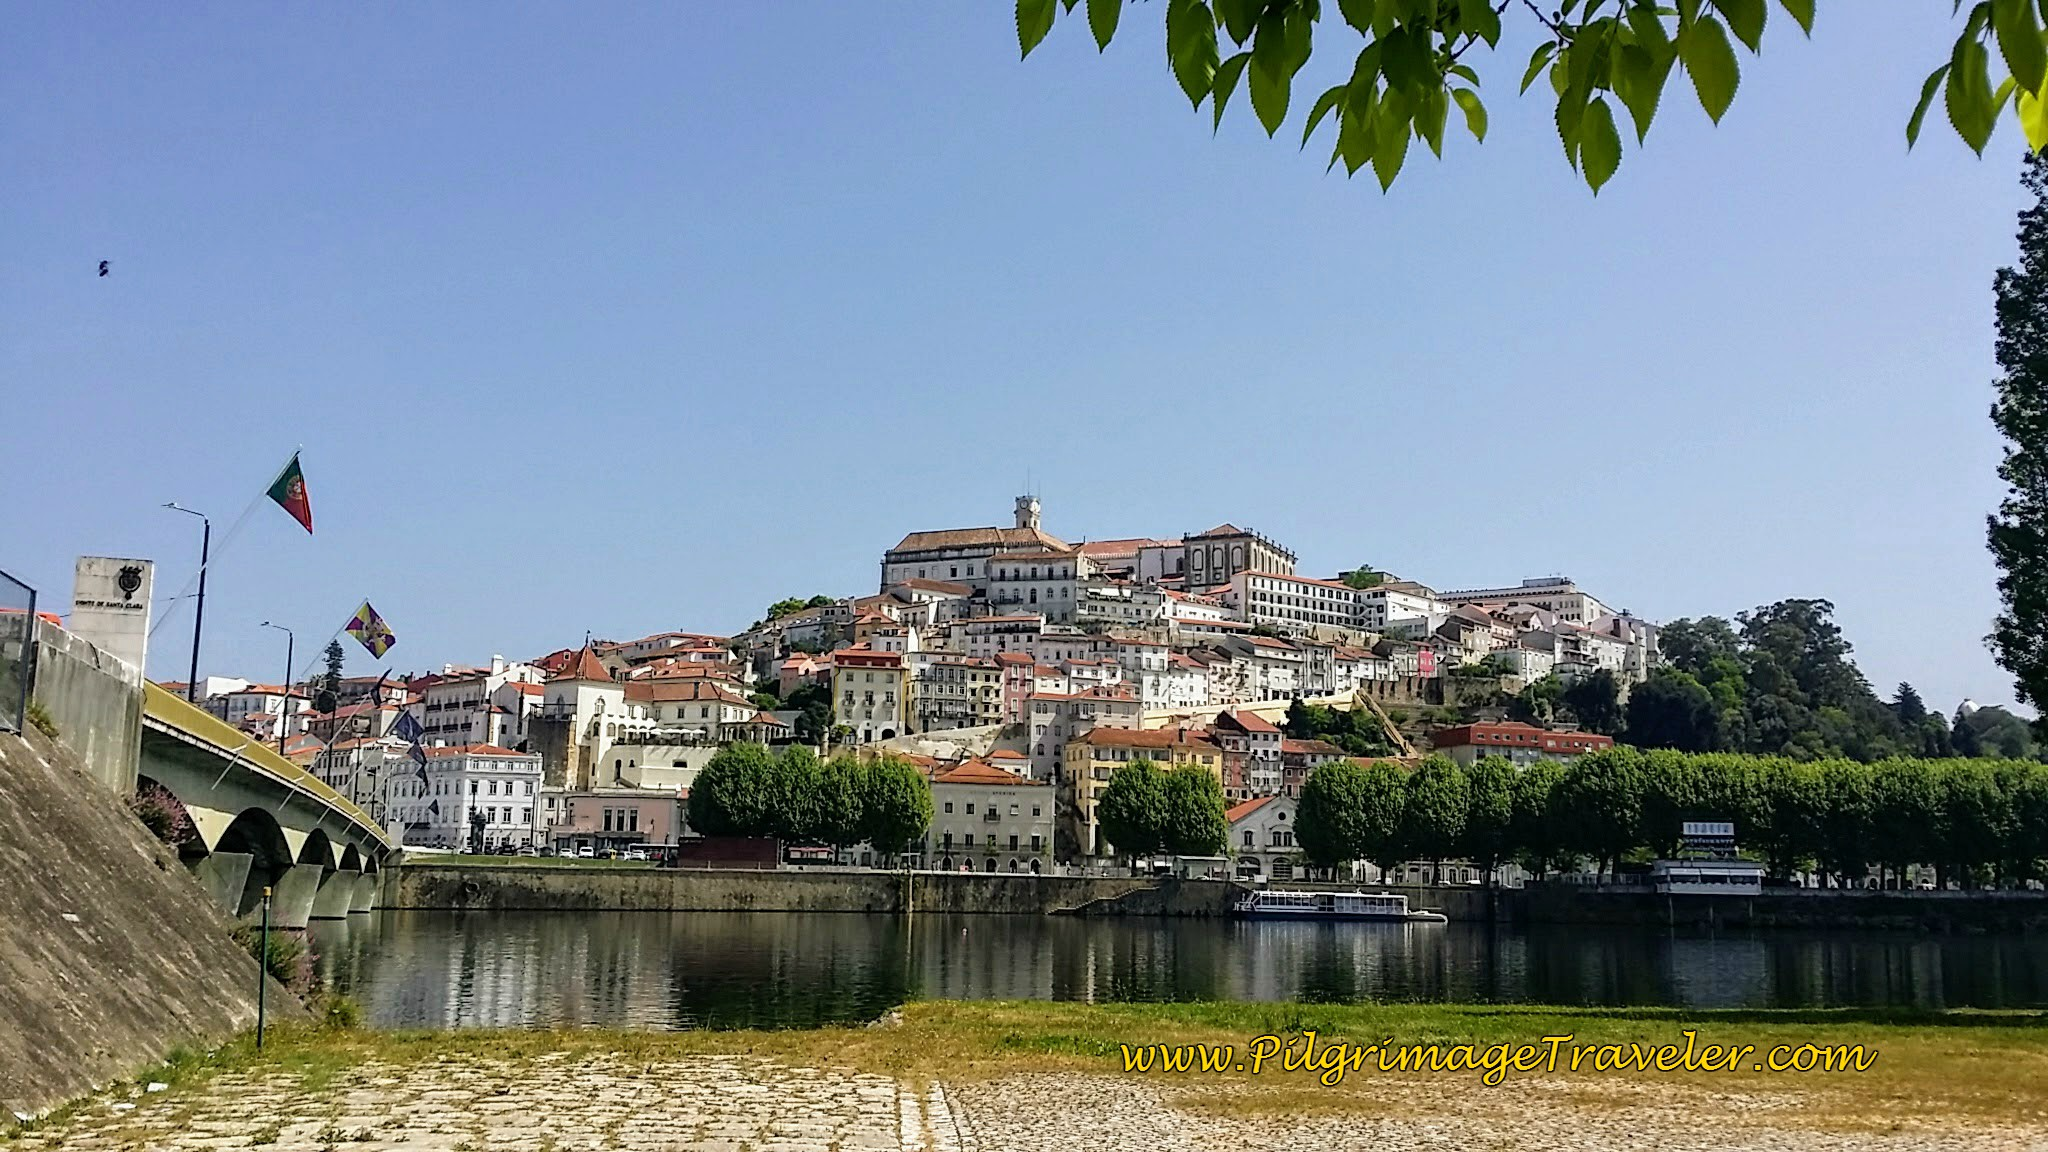 The Historic University Town of Coimbra, Portugal